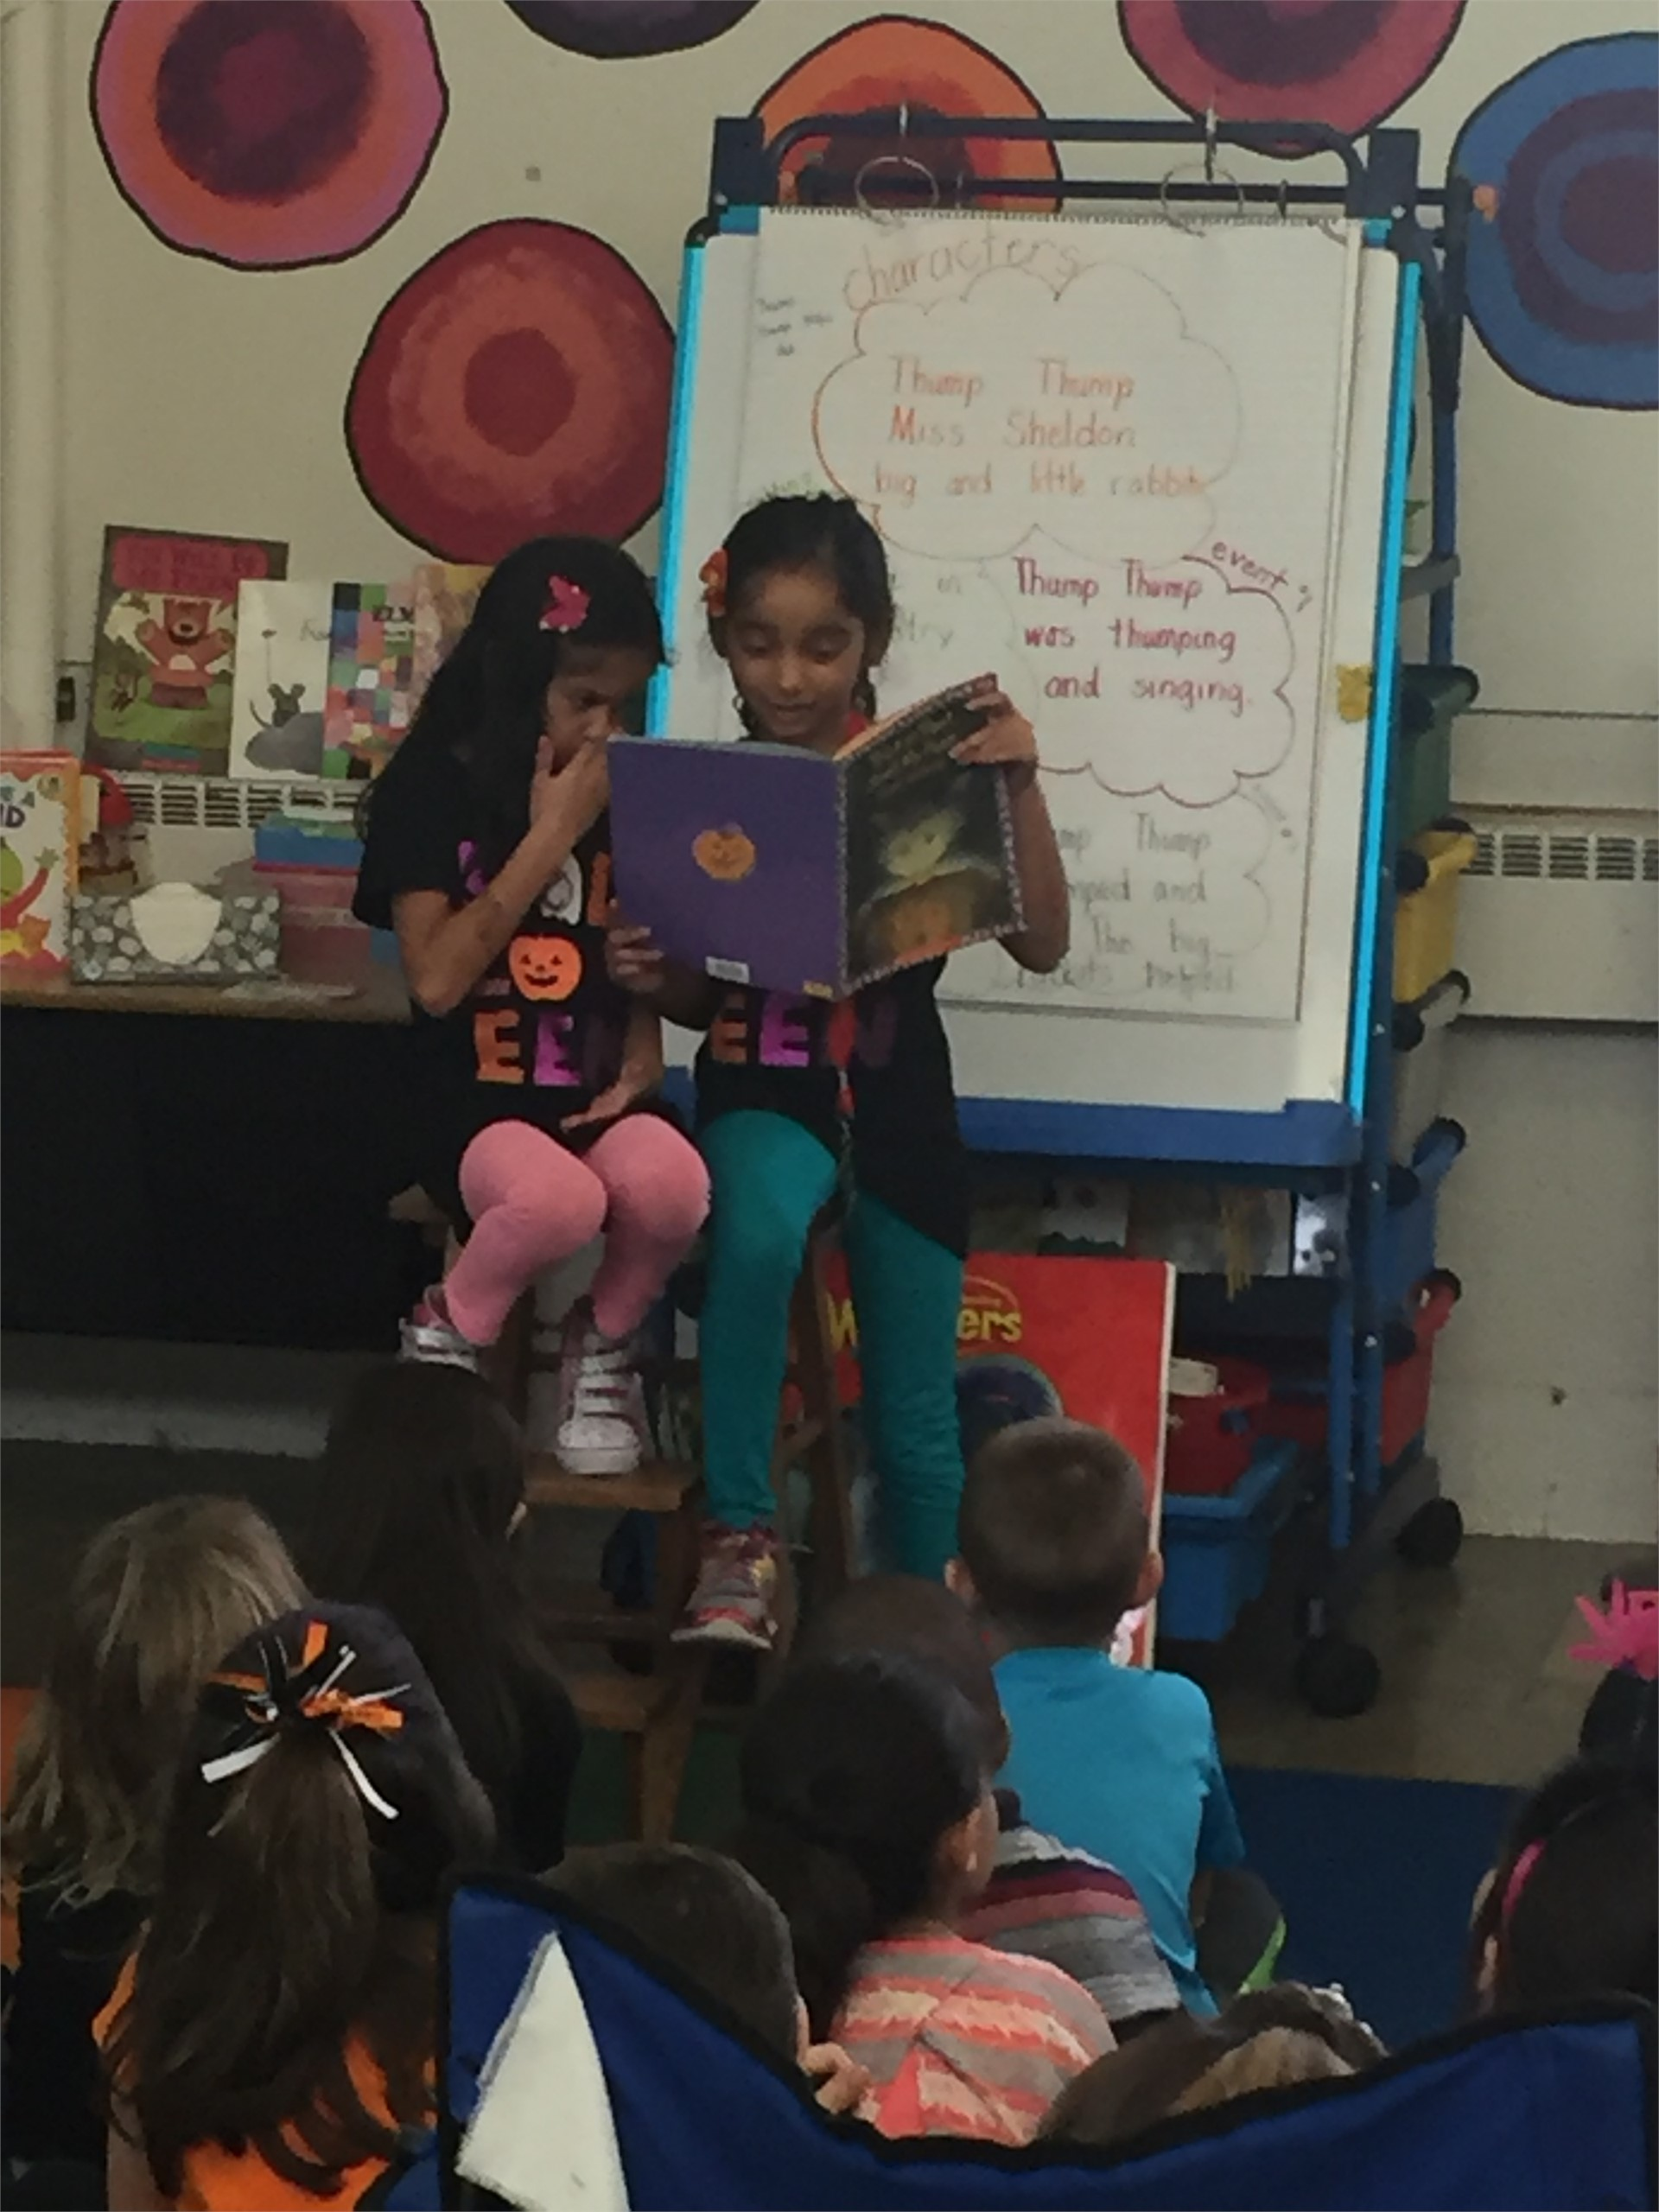 Amiya and Arya B. Sister Principals for the day reading to students.